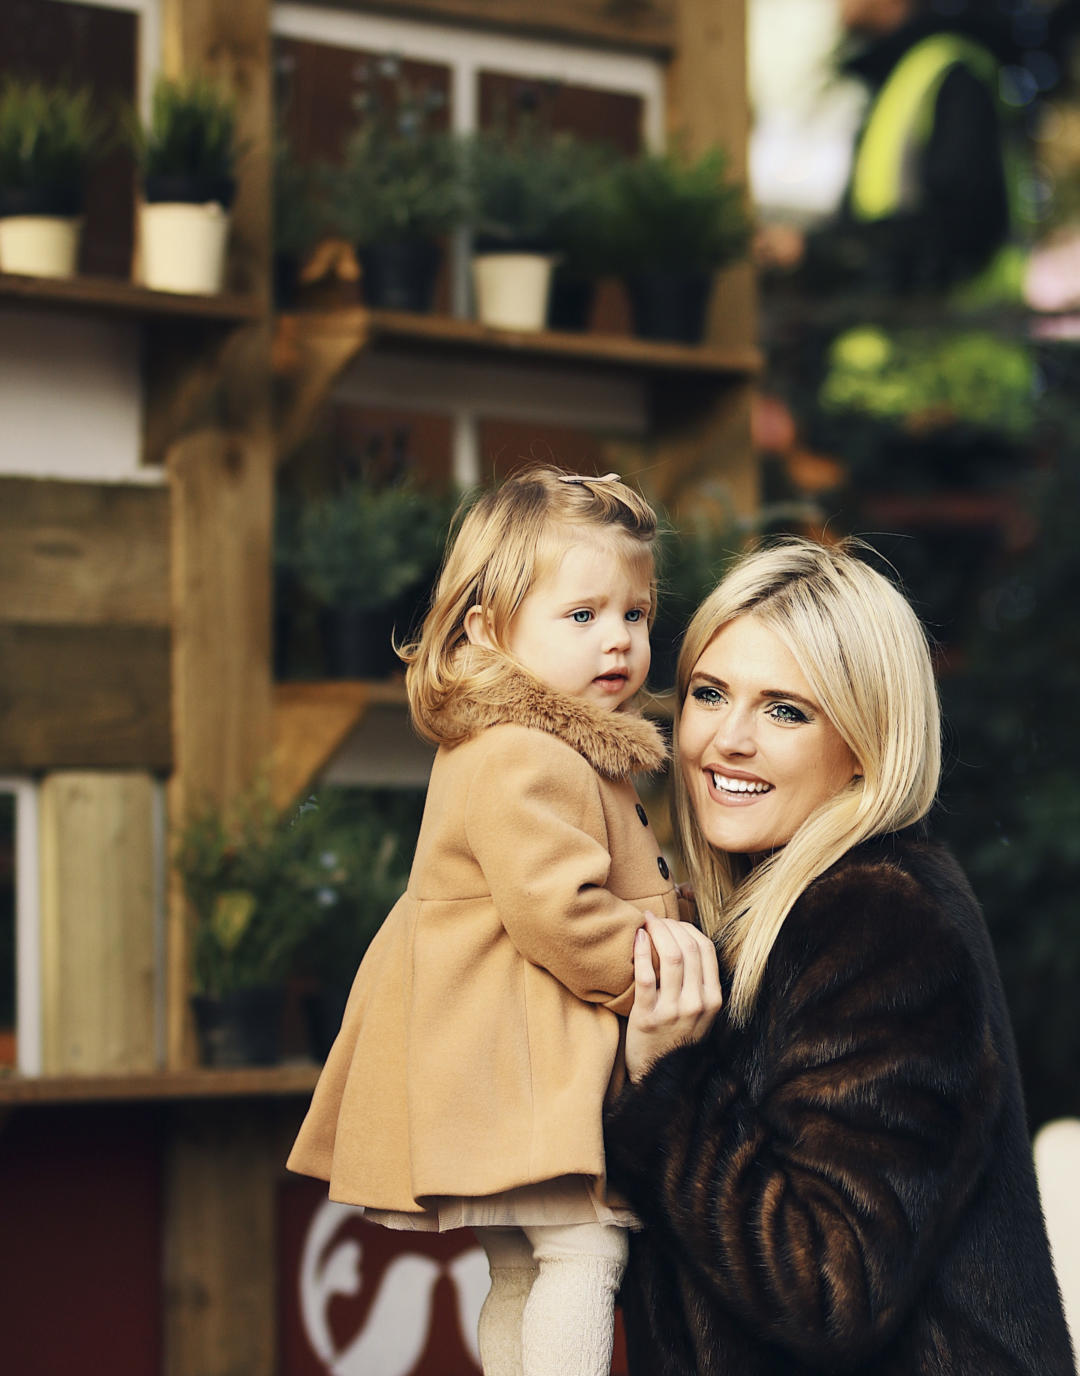 Mother and daughter in warm winter coats from monsoon